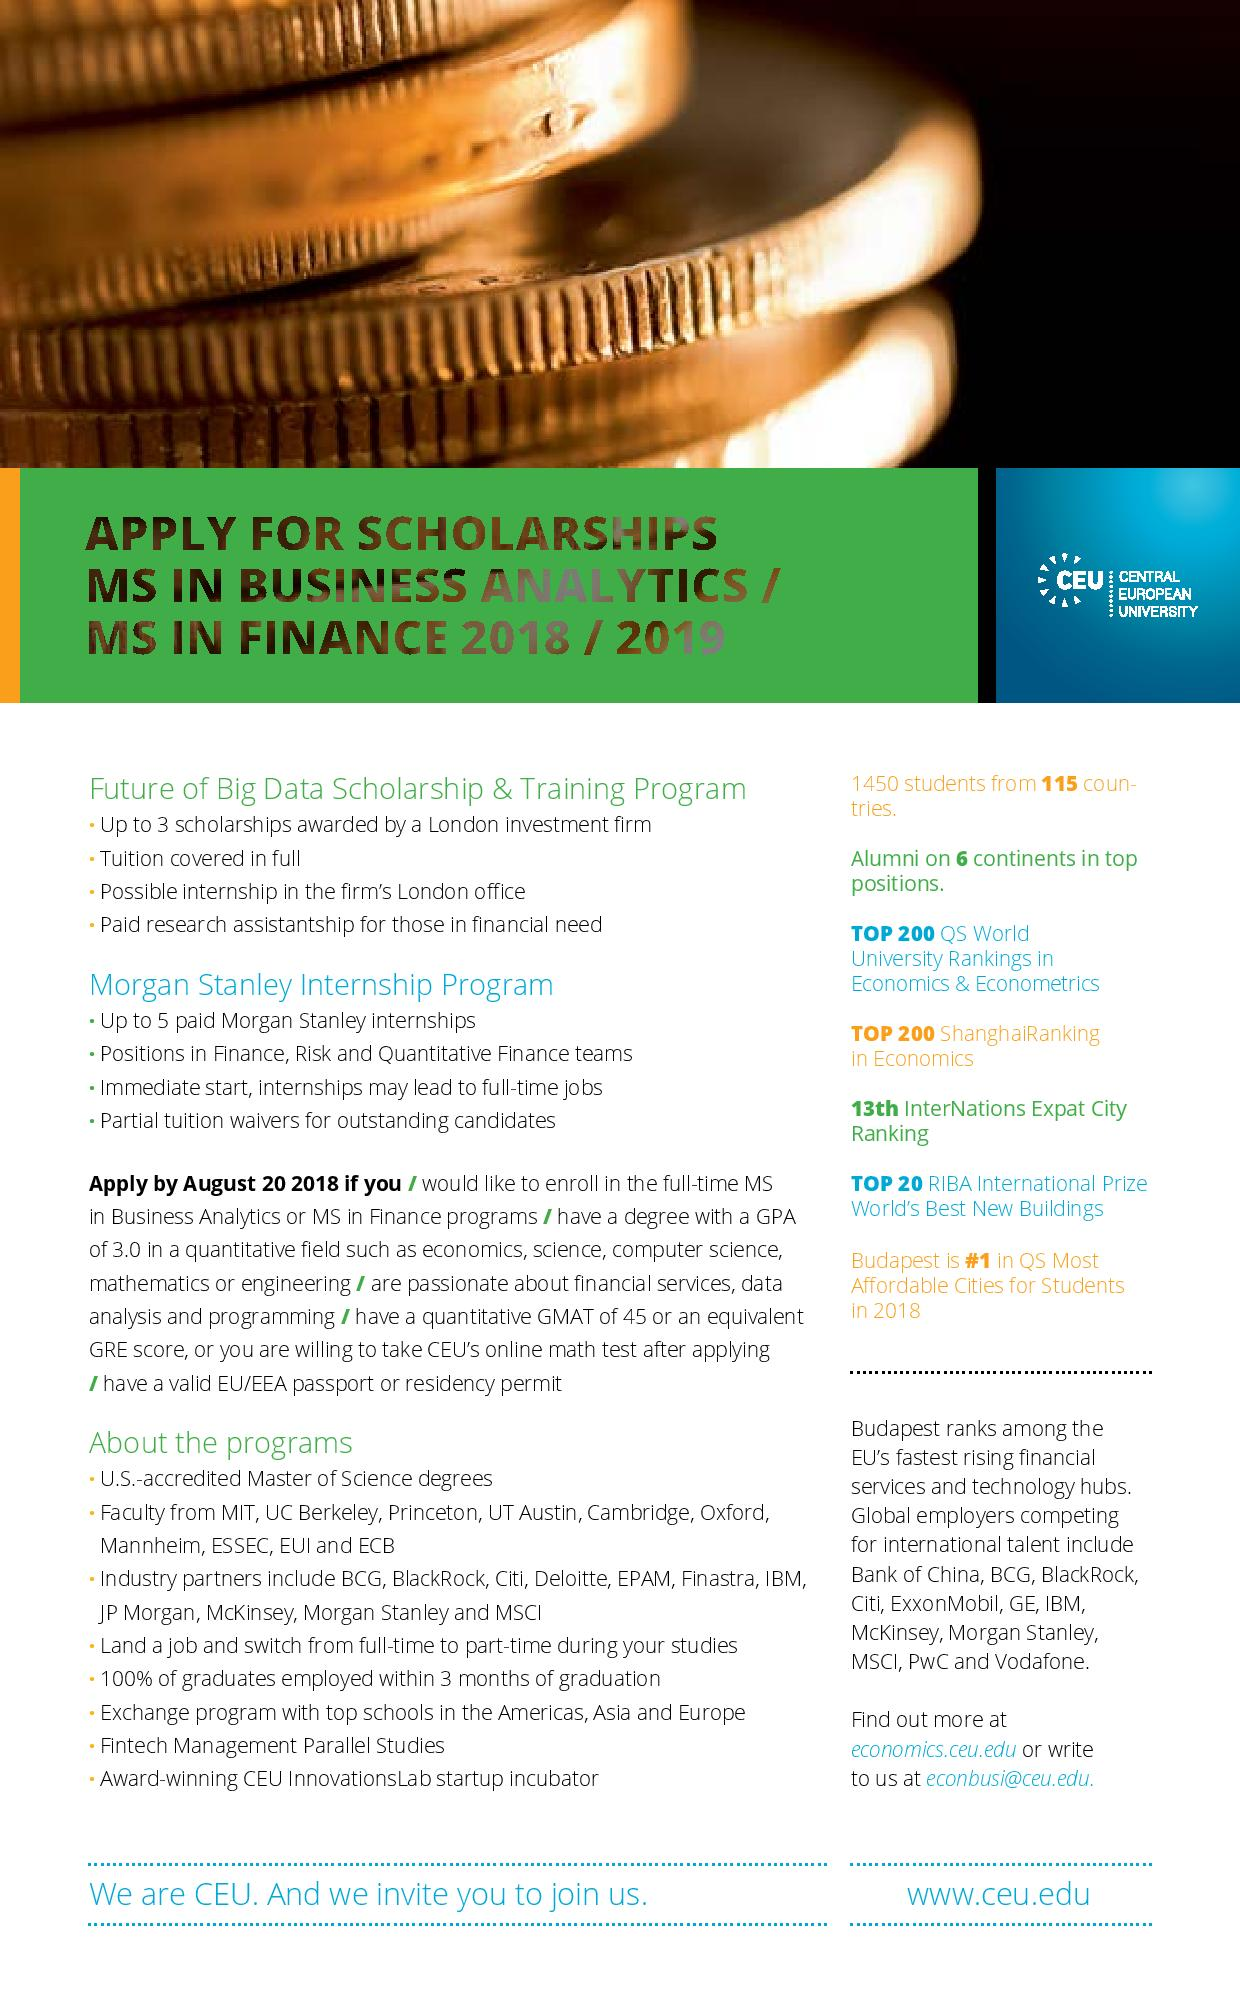 Future of Big Data Scholarship & Training Program